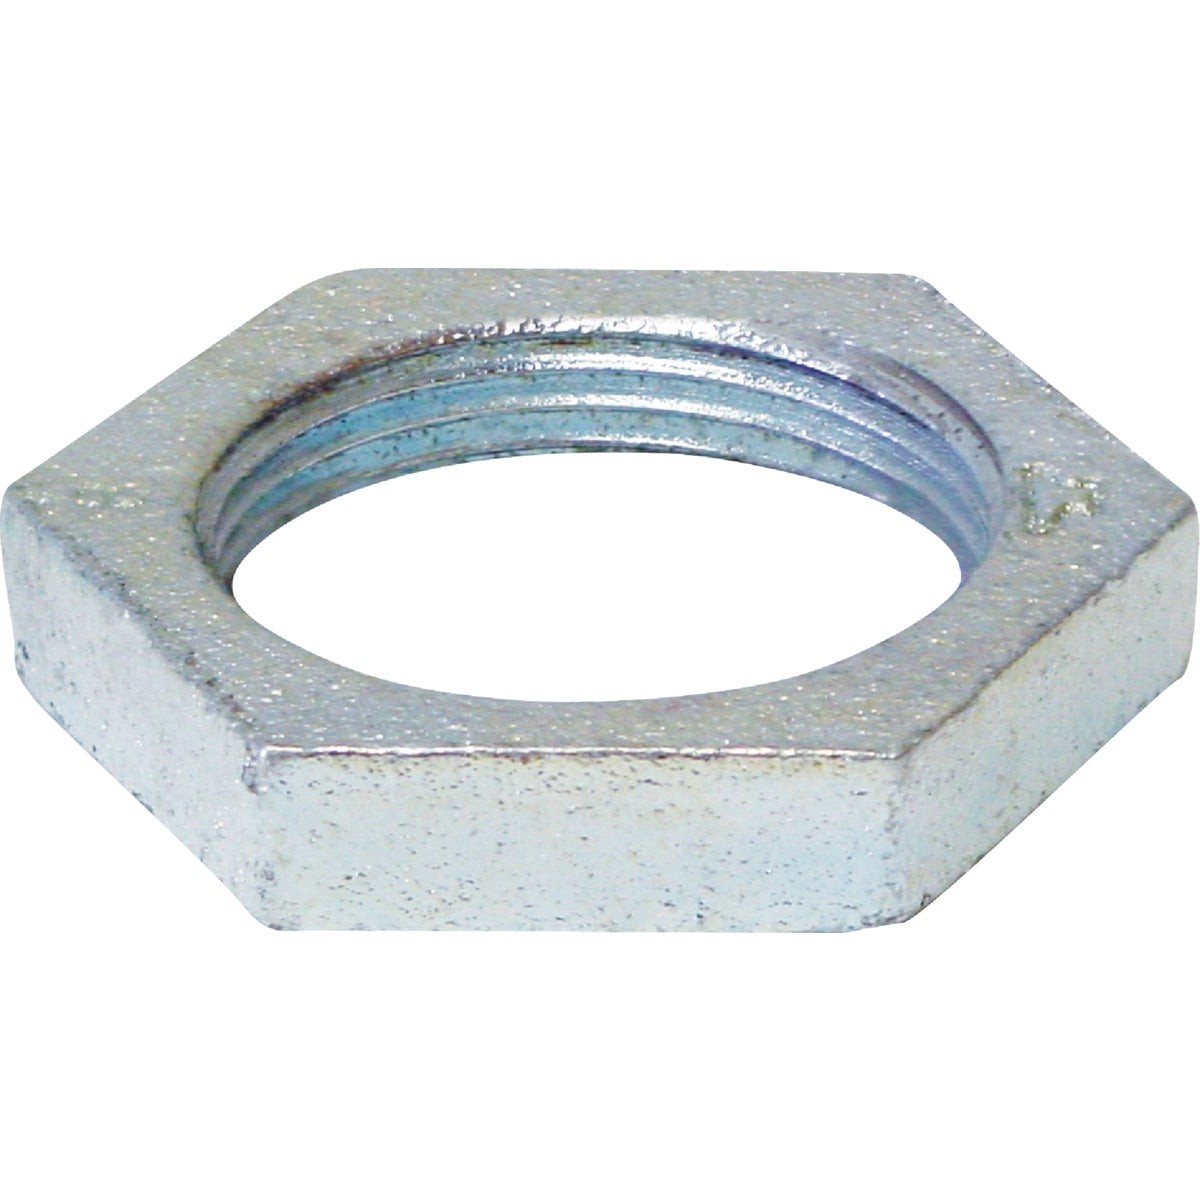 "1/2"" GALV LOCKNUT - 8700162509 by Anvil International"